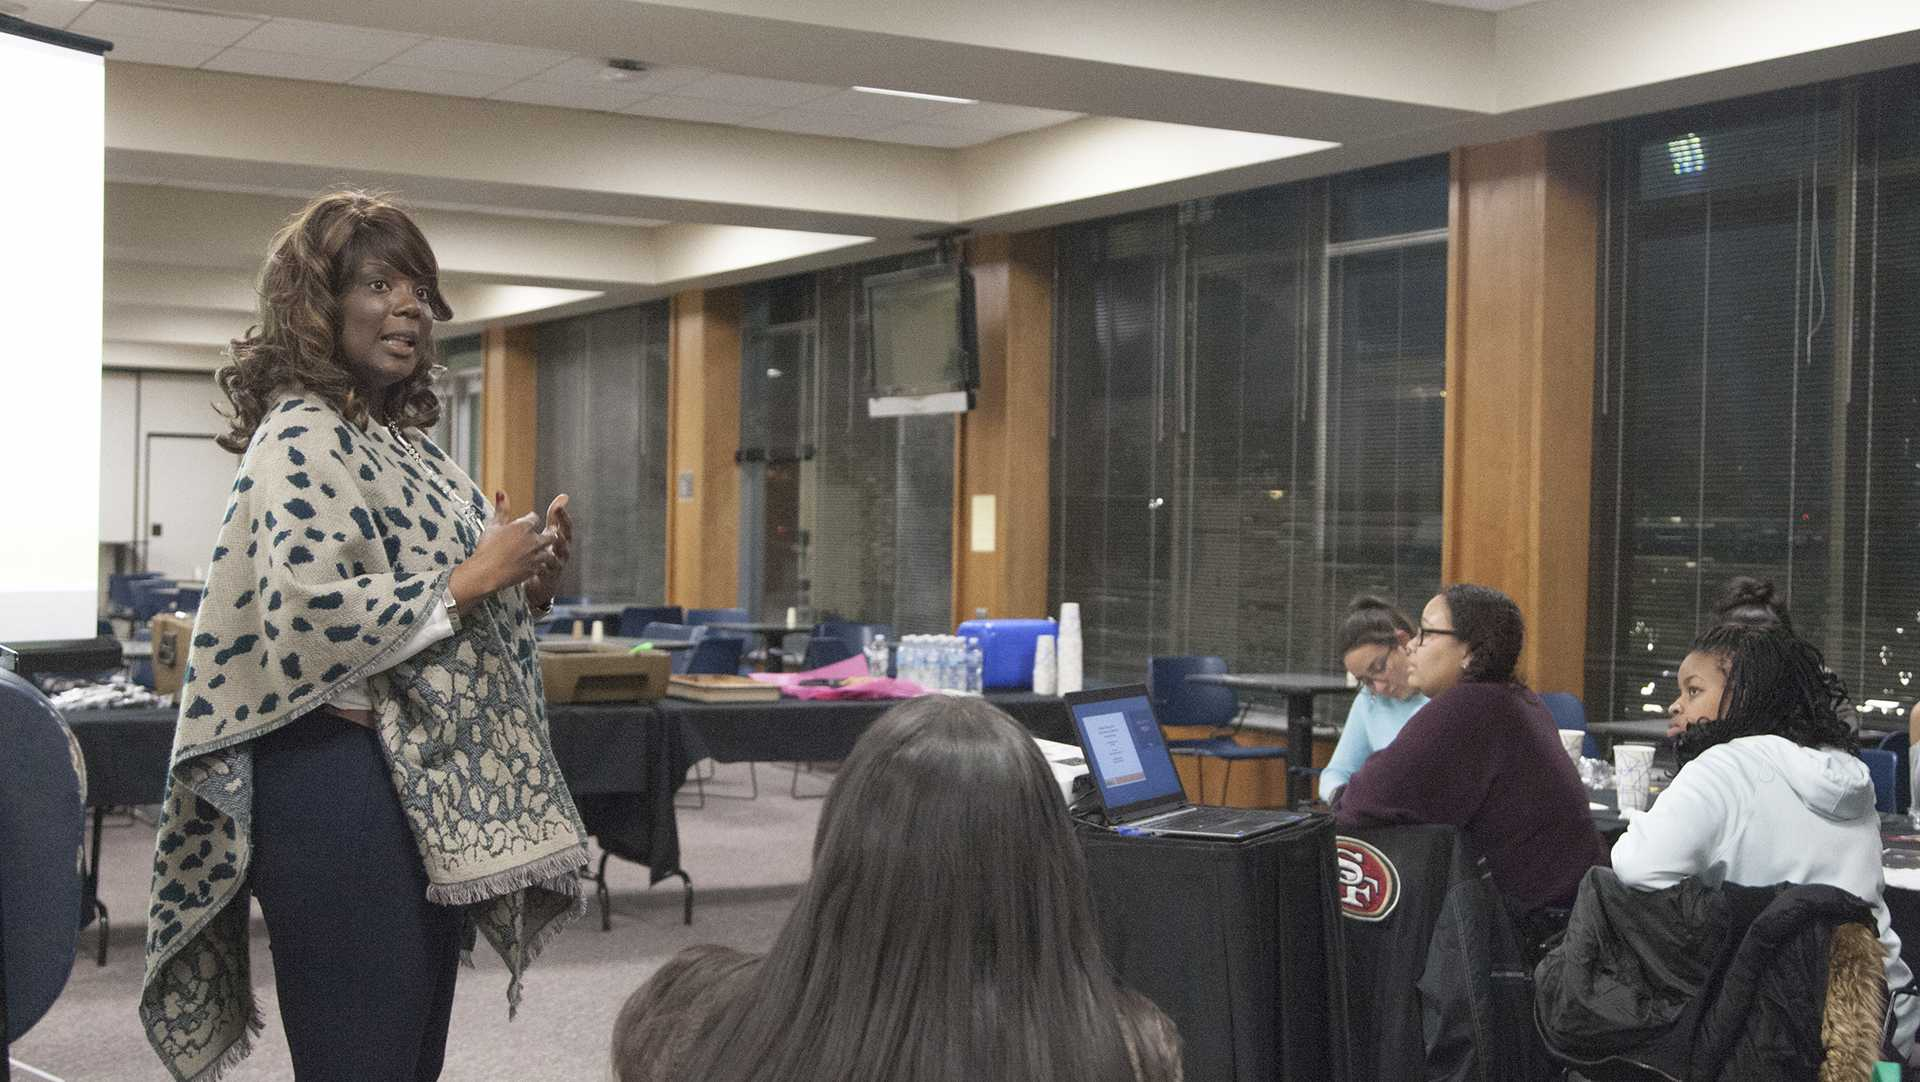 UI VP of Student Life Melissa Shivers during Being a Boss with VP for Student Life Melissa Shivers in the  IMU on Wednesday, Feb. 7, 2018.  The event was presented by the Womxn of Colour Network. (Ashol Aguek/ The Daily Iowan)